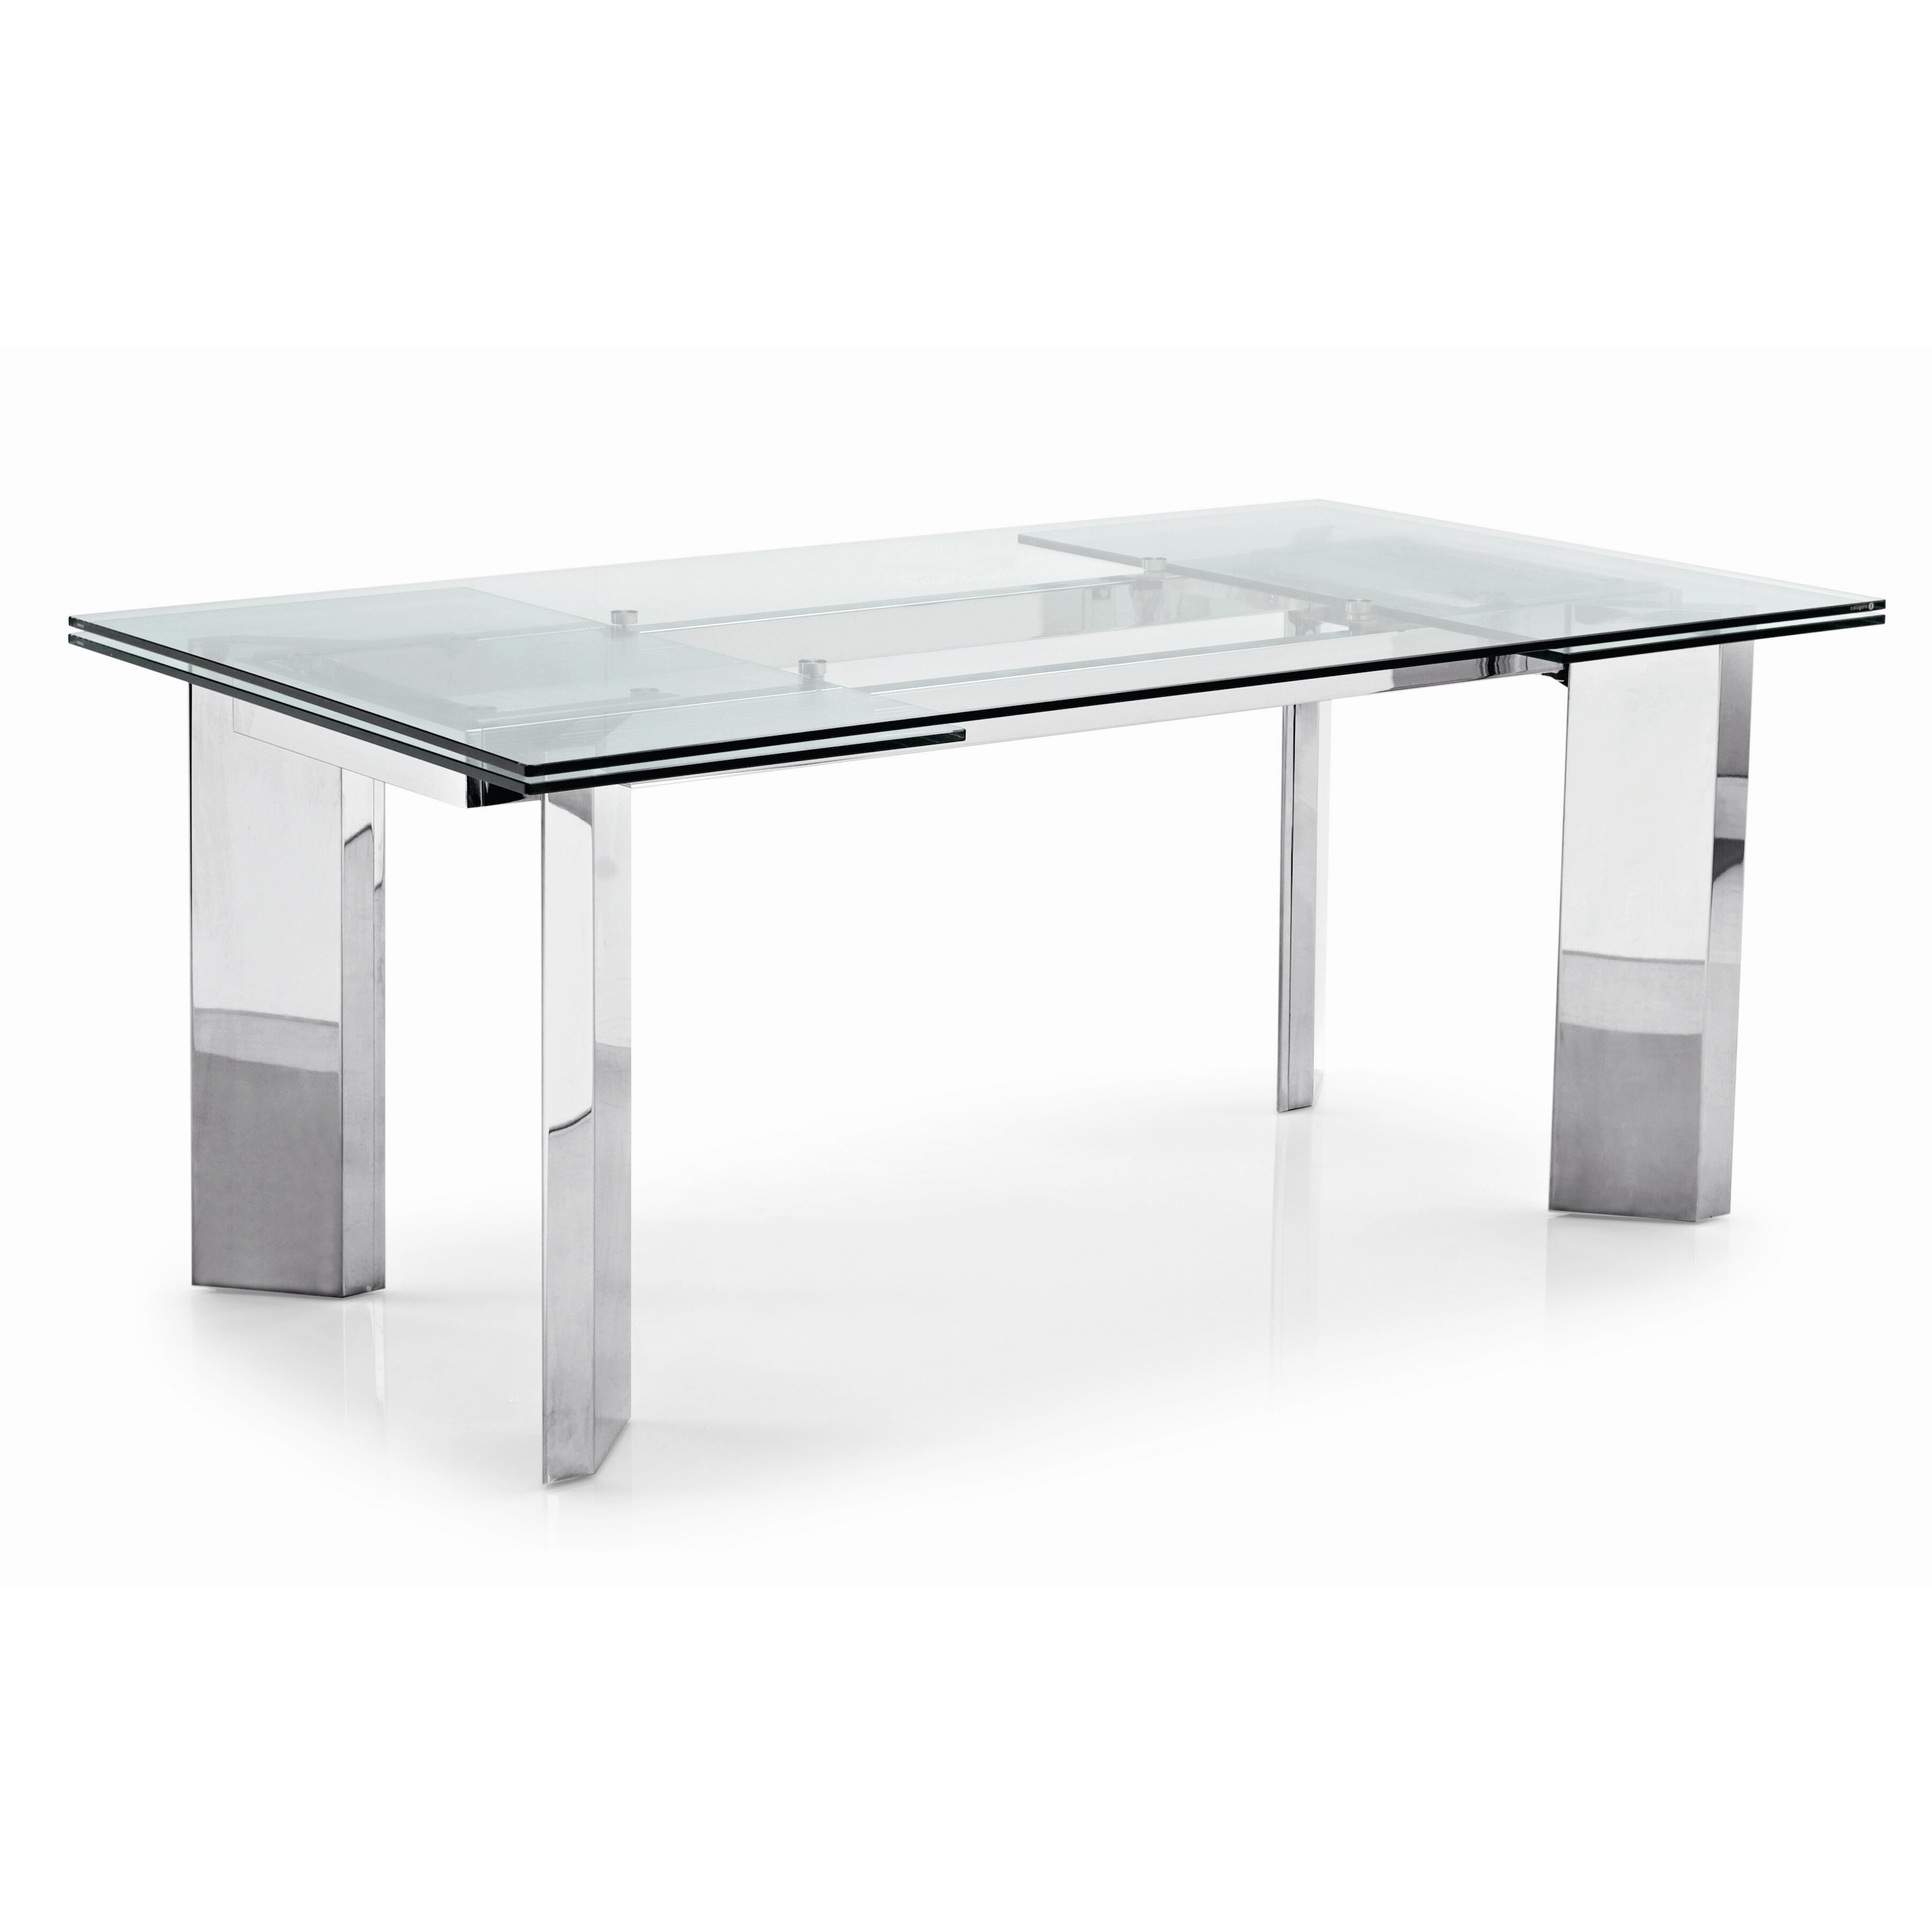 calligaris dining table -  calligaris tower extendable dining table